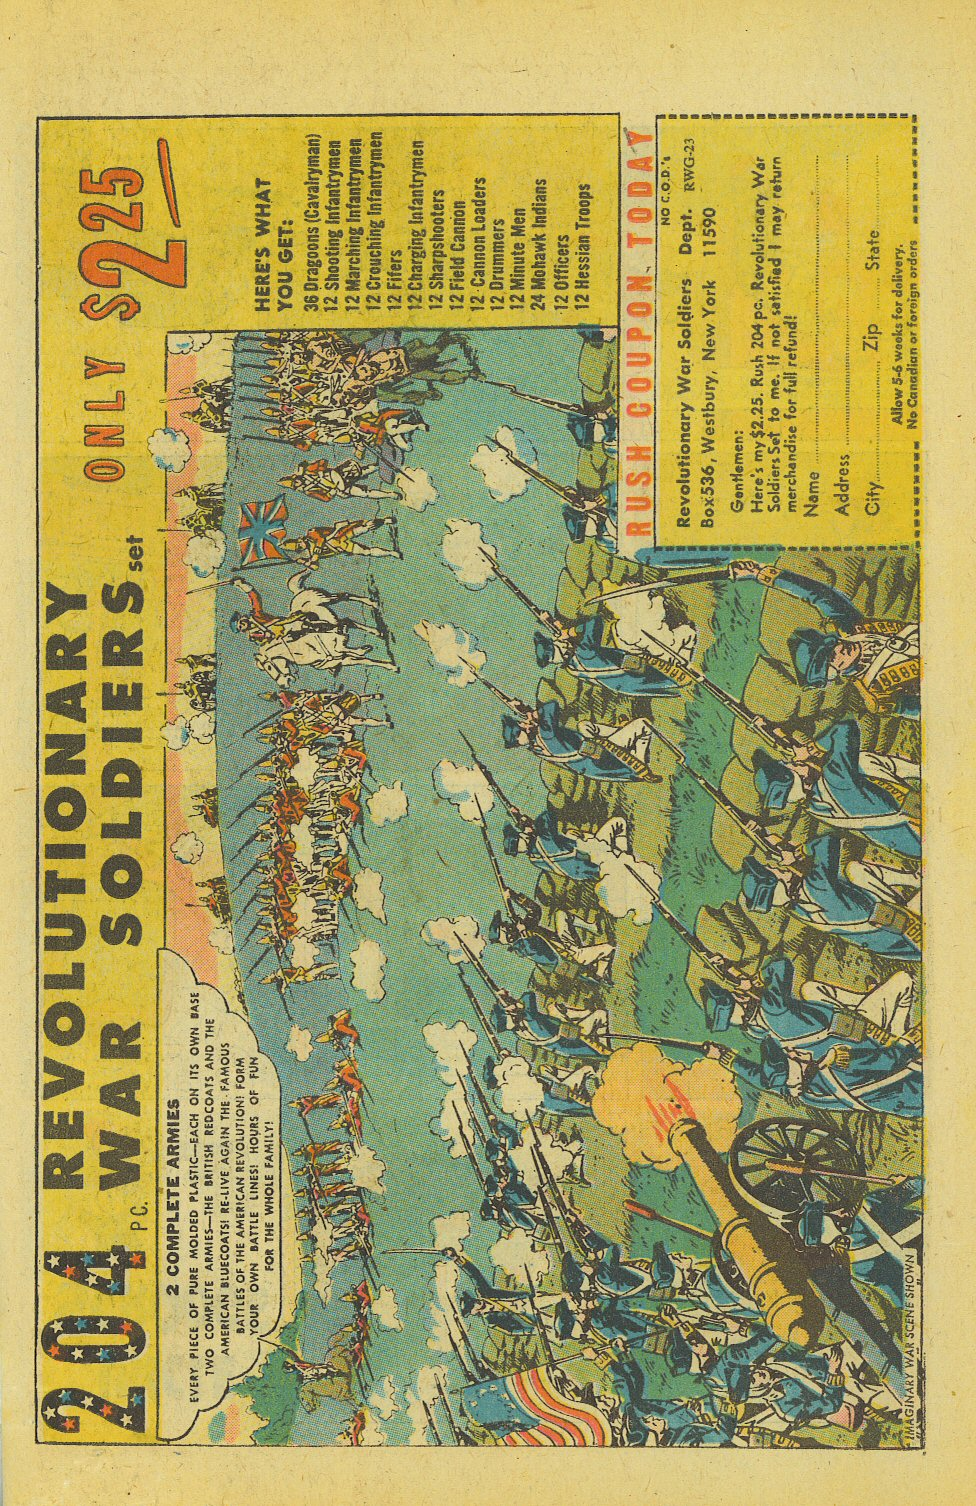 ooge-1953/issue-224/full #283 - English 34